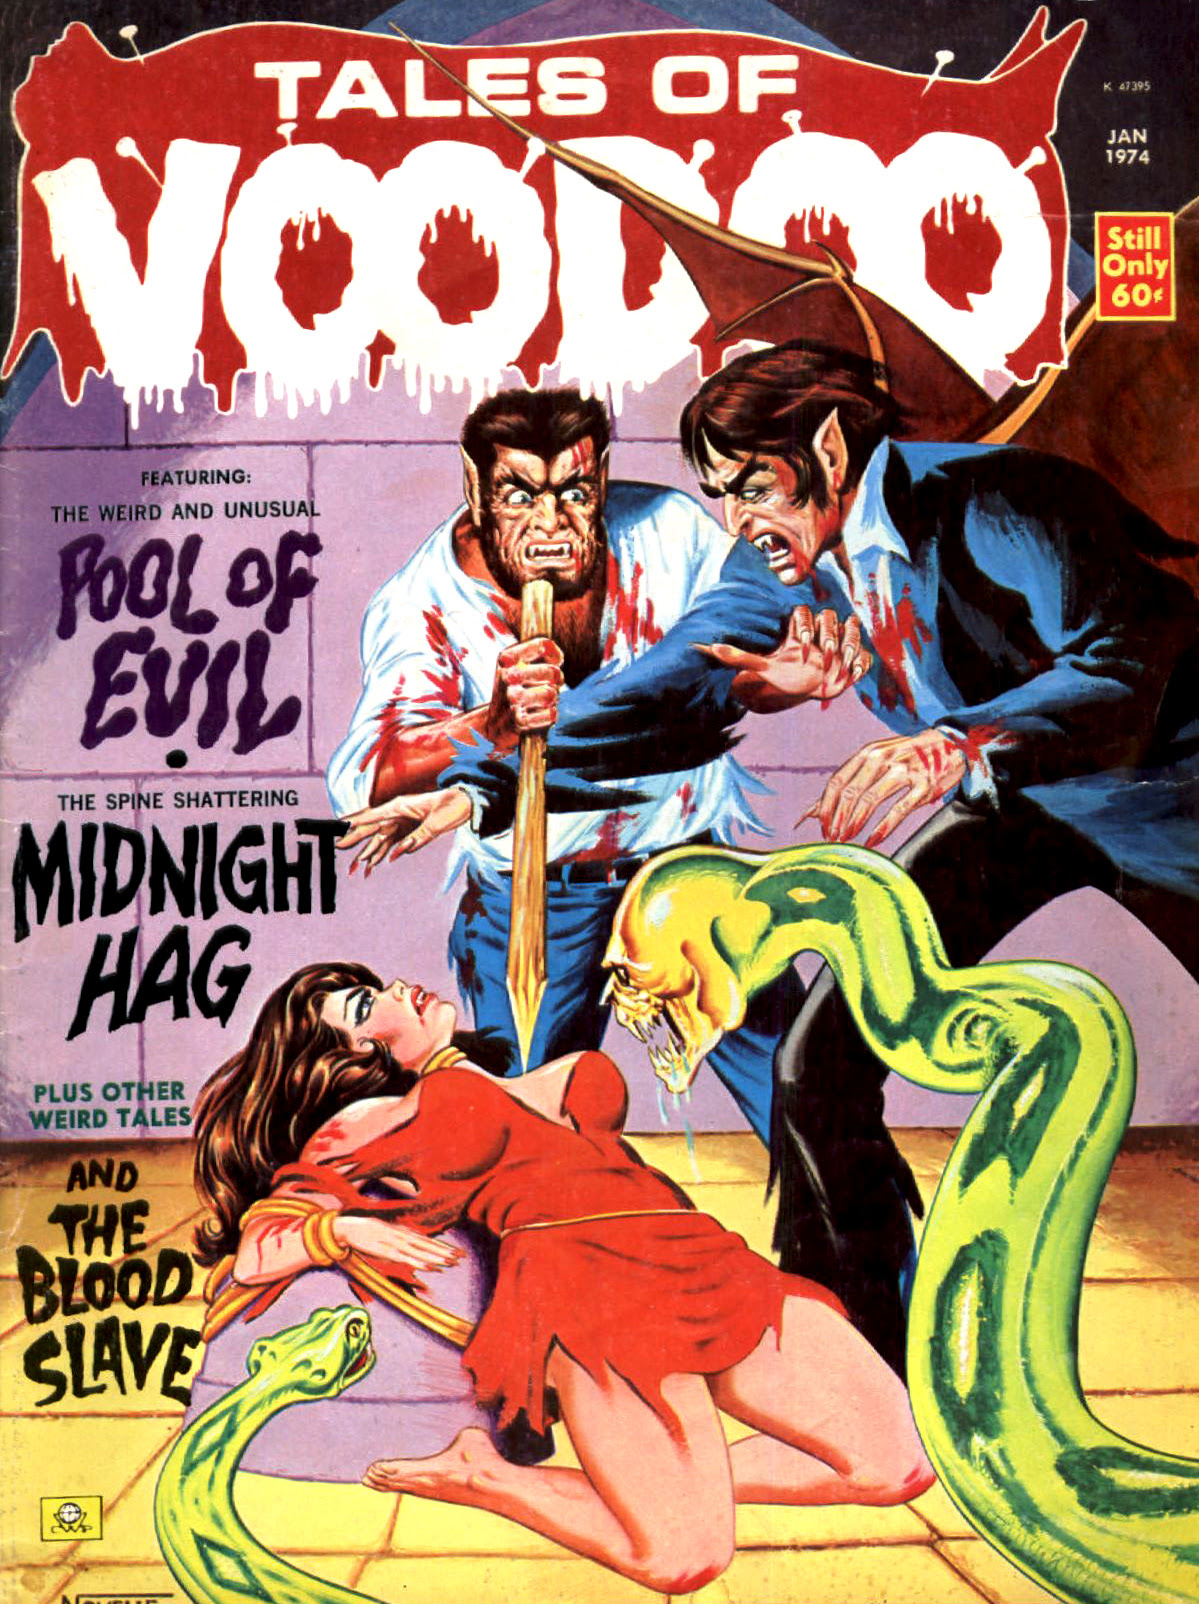 Tales of Voodoo Vol. 7 #1 (Eerie Publications 1974